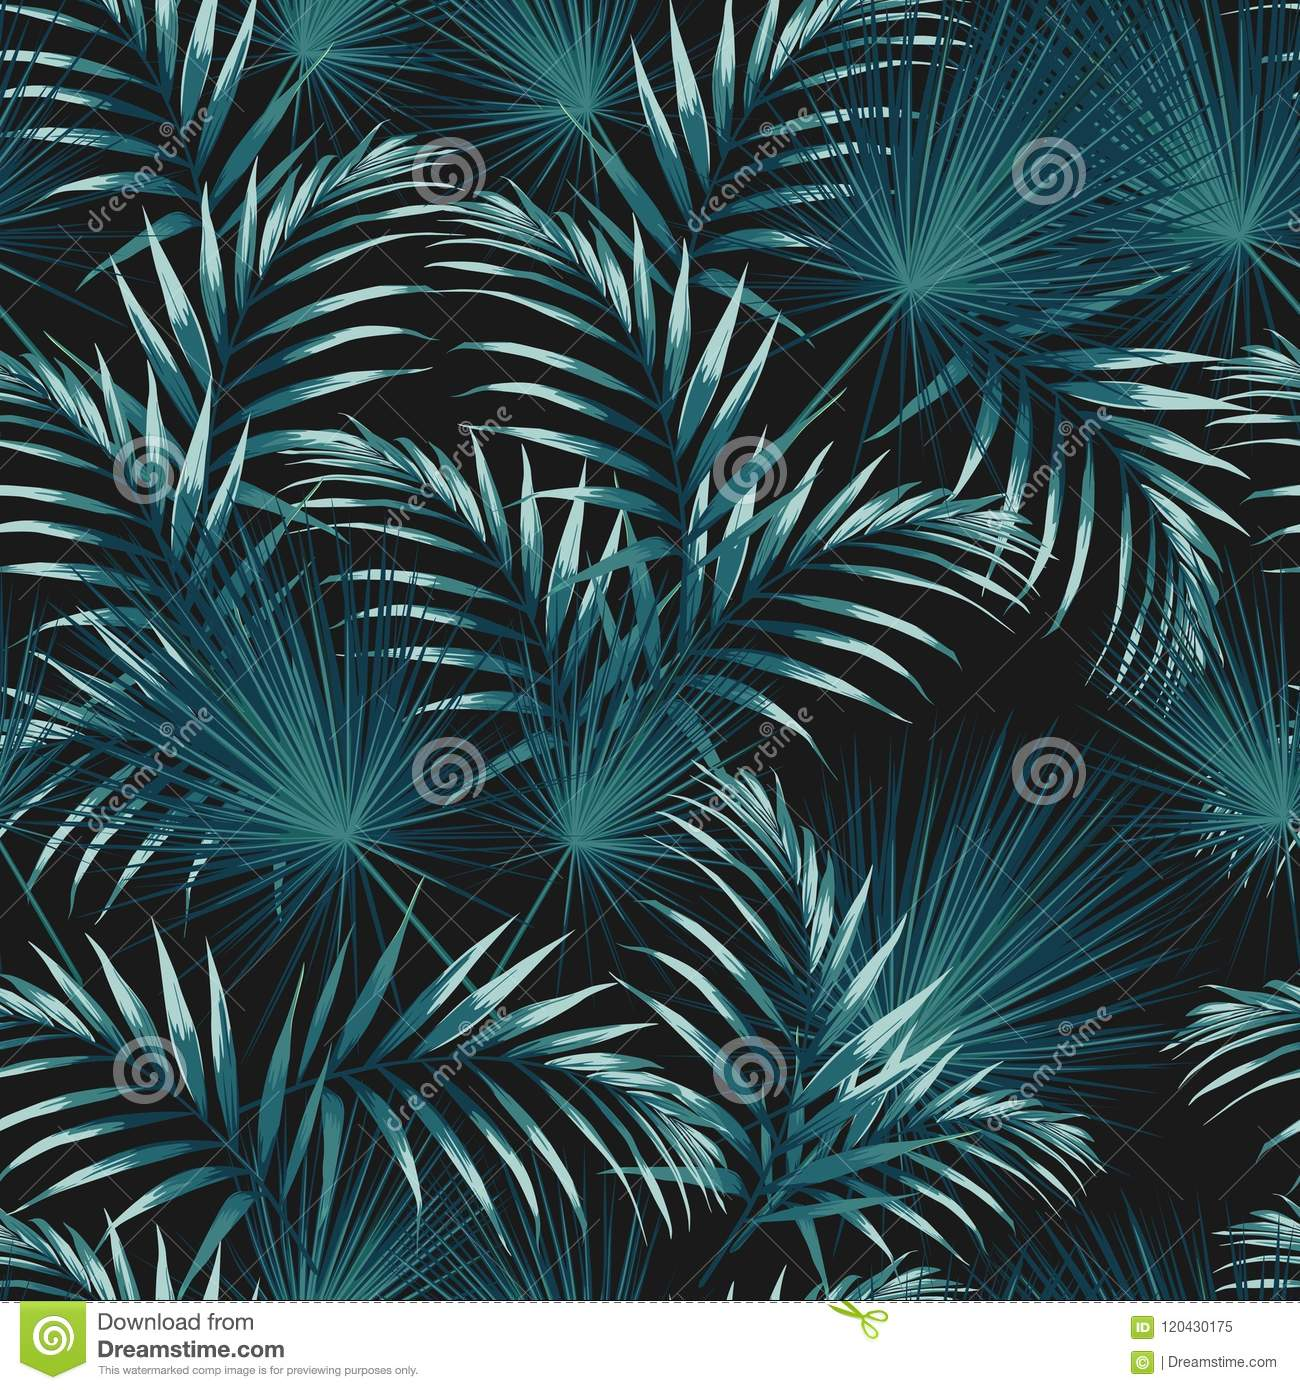 Seamless pattern with tropical leaves. Bright green palm leaves on the black background.